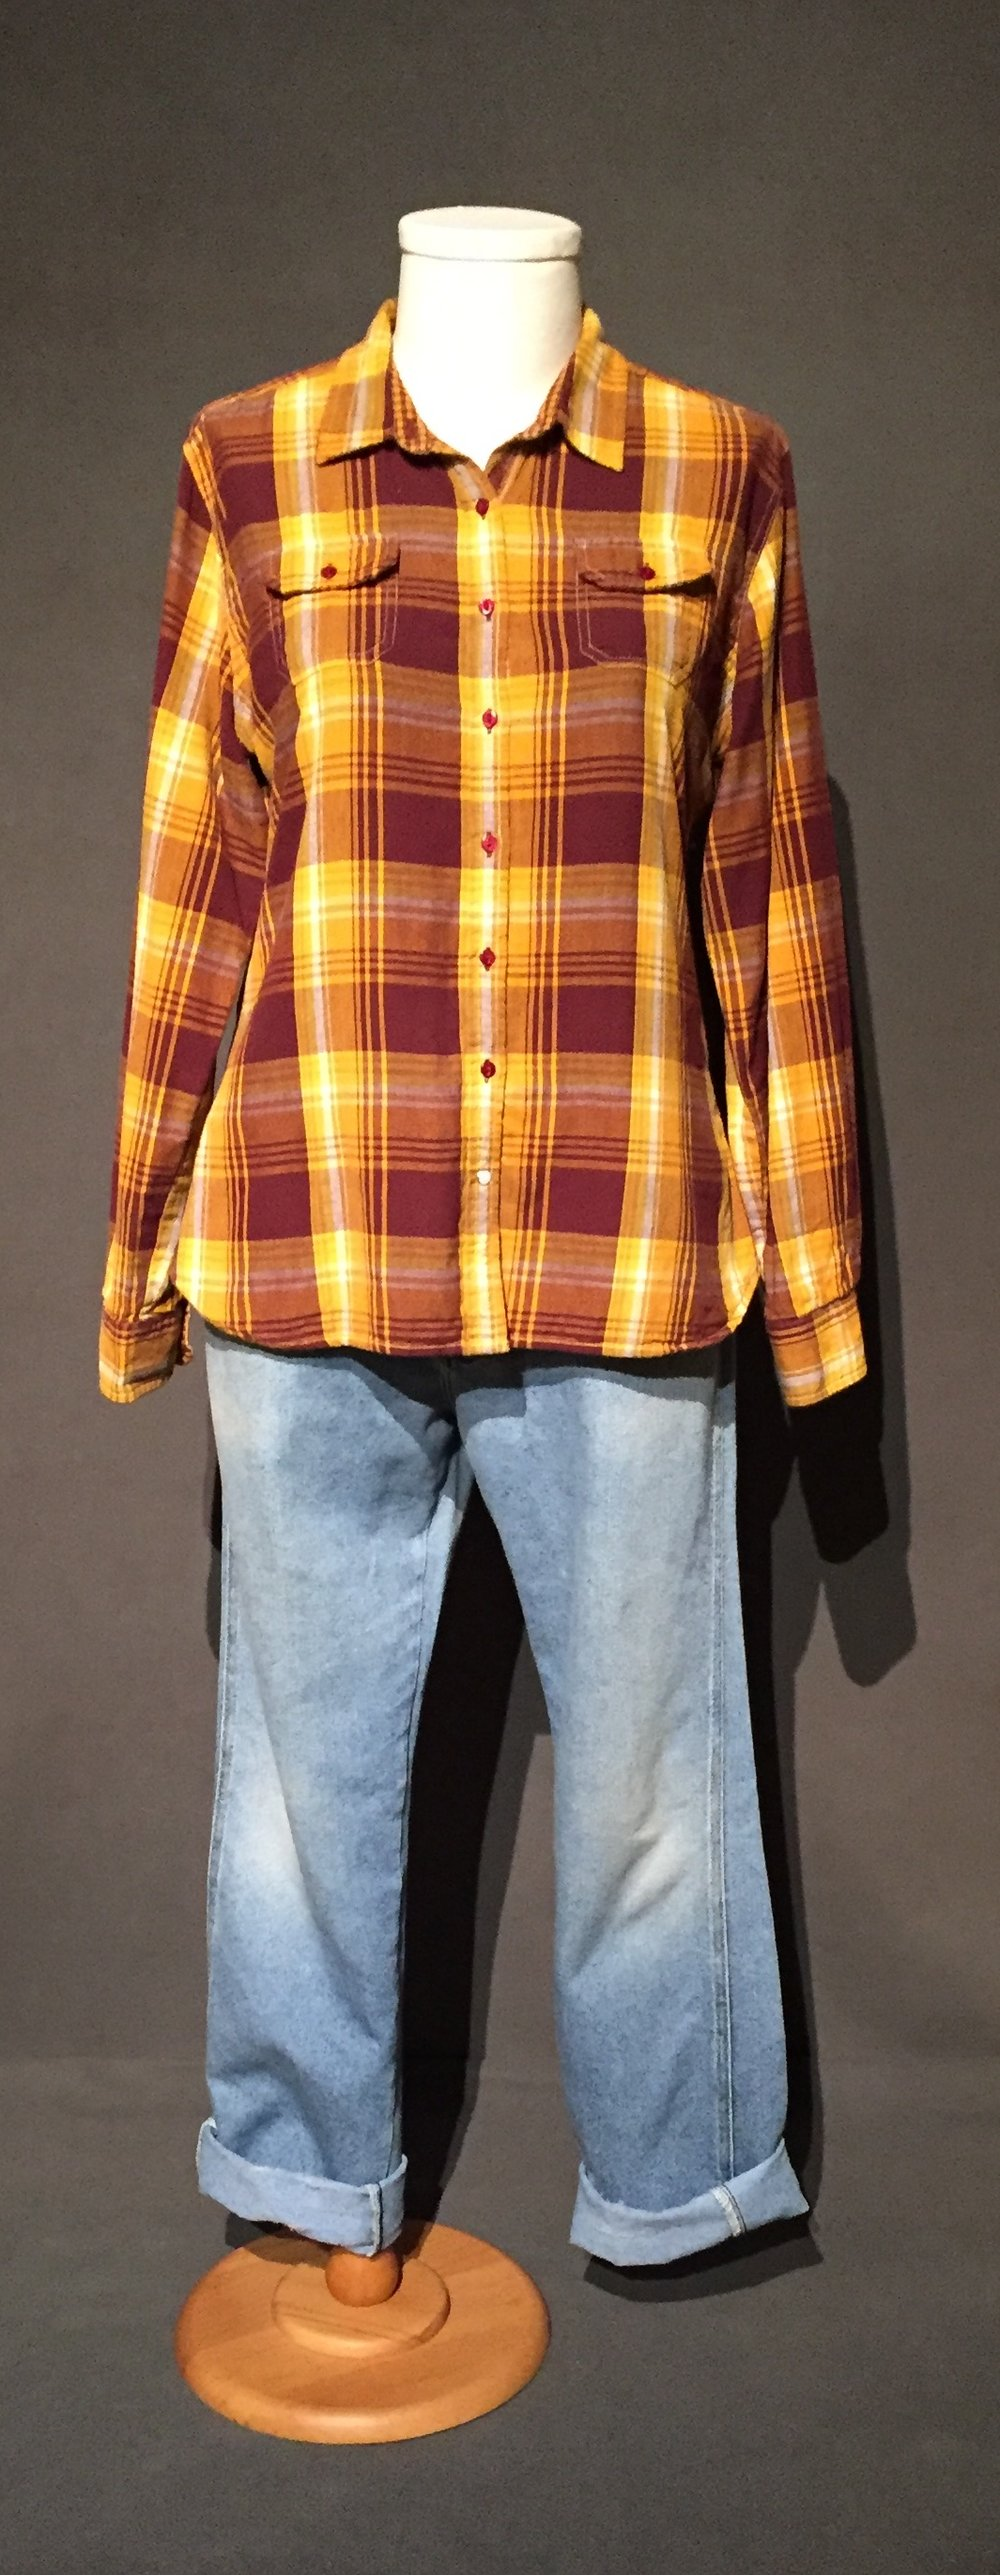 "- Flannel shirt, denim pants; Owner – Lyadonna, bi-sexual, woman, 32, lives in Iowa; c. 2010s""If I'm going to be around this group of women, what are their expectations going to be, and what should I wear and I. I had this one, camping shirt or you know it's from an Outback store and, it's plaid and it's also kind of Iowa State colors and I was like, I'm definitely wearing that for this trip, so, I will fit right in. I got there, and I didn't at all. It was funny. I looked like a lumberjack, but, everyone else was wearing these, just these t-shirts that had these big rainbows on them, so, you know, it was funny, but I have thought about this before, you know, oh I'm going out in this, is this"